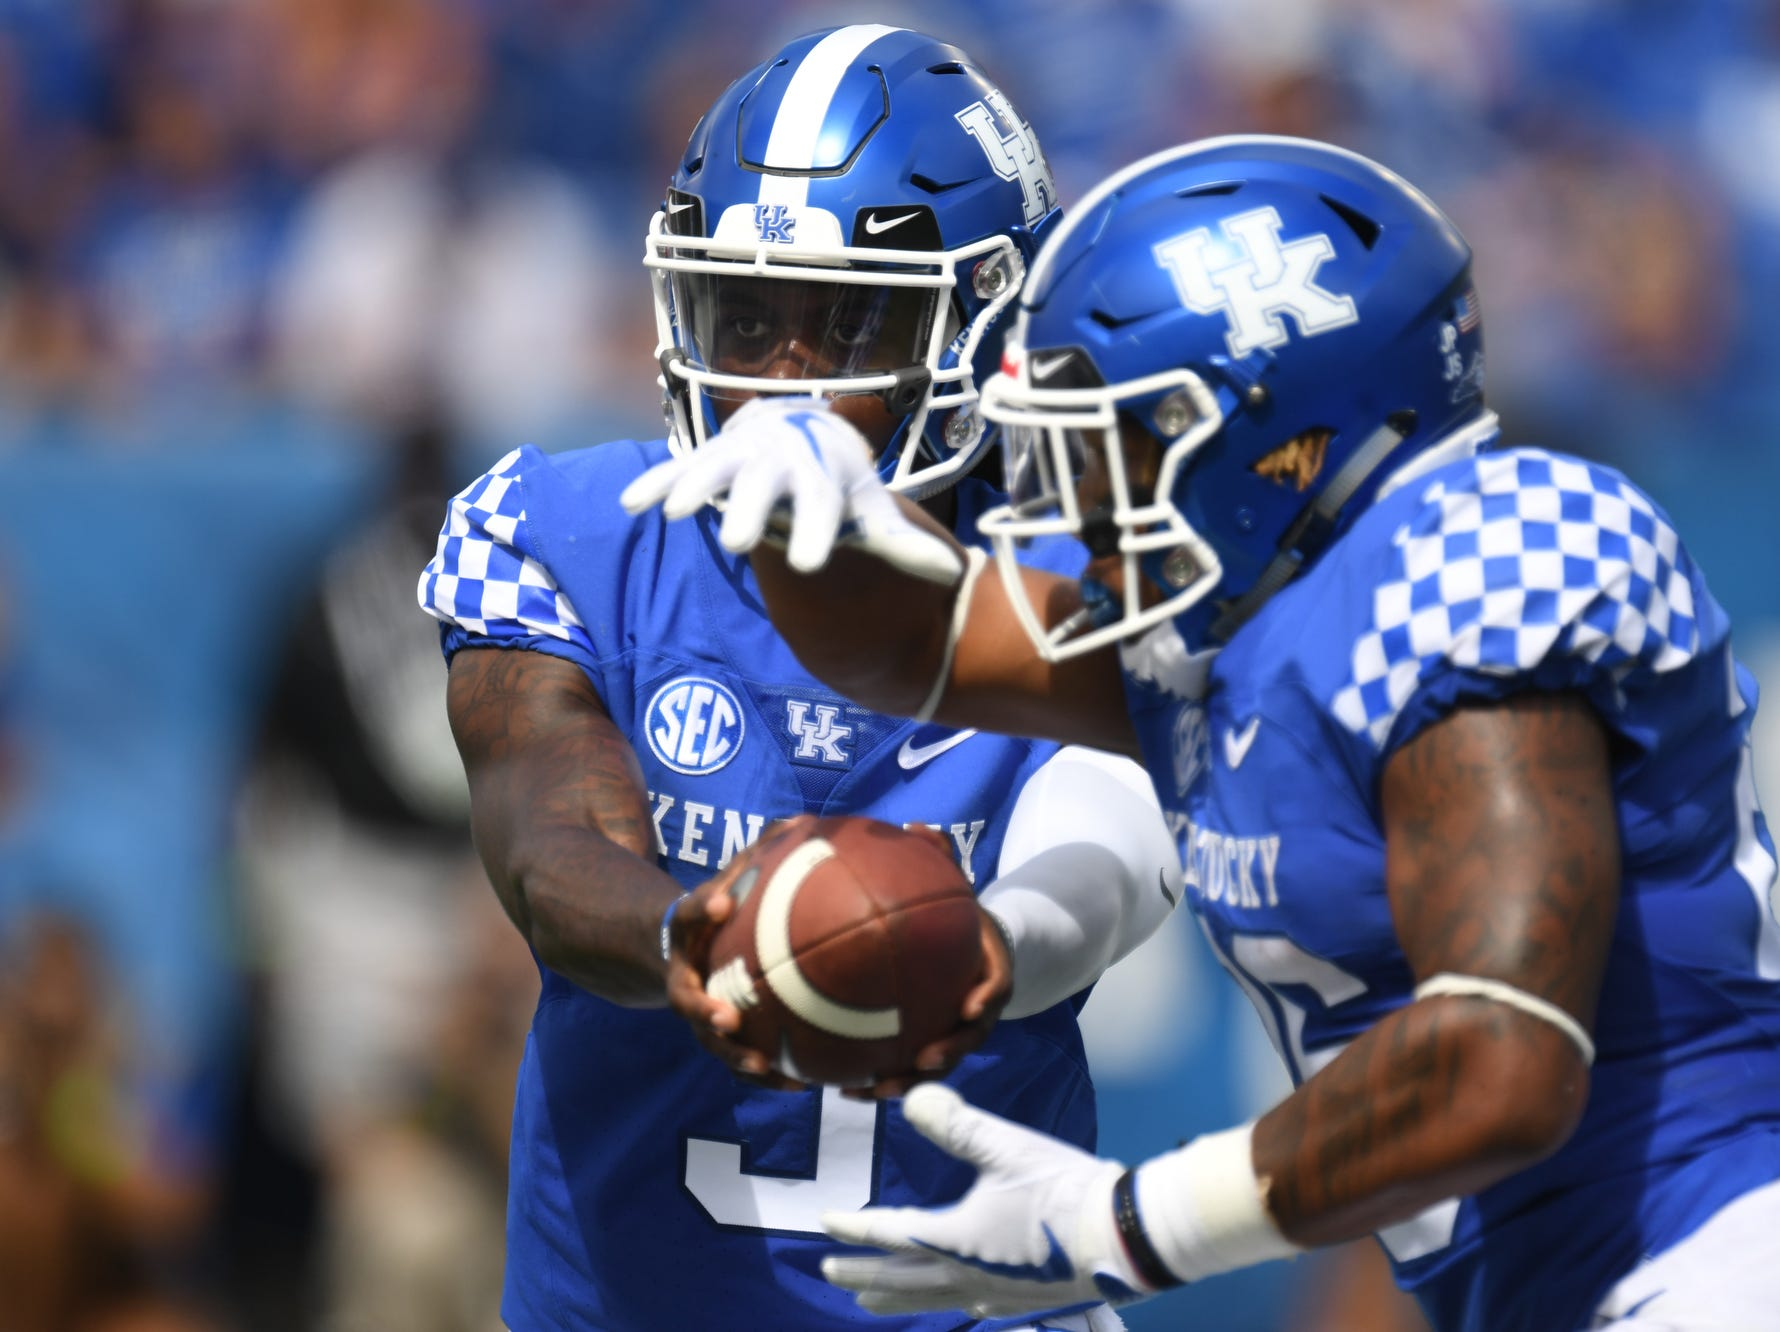 UK QB Terry Wilson hands off the ball to RB Benny Snell Jr. during the University of Kentucky football game against Central Michigan at Kroger Field in Lexington, Kentucky on Saturday, September 1, 2018.